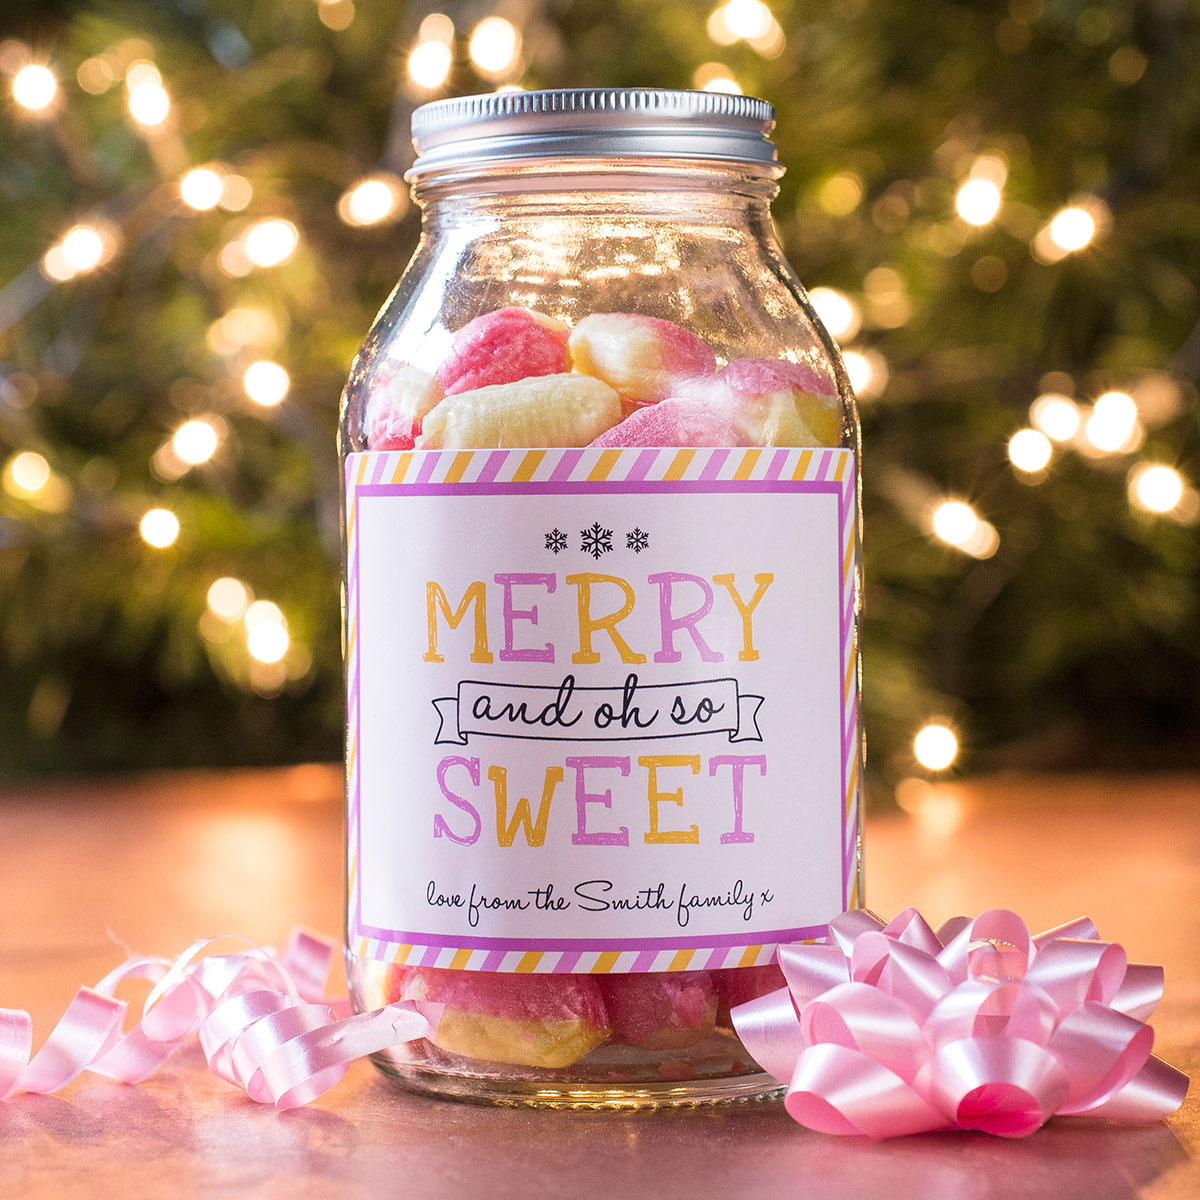 Personalised Jar Of Rhubarb & Custard Sweets - Oh So Sweet